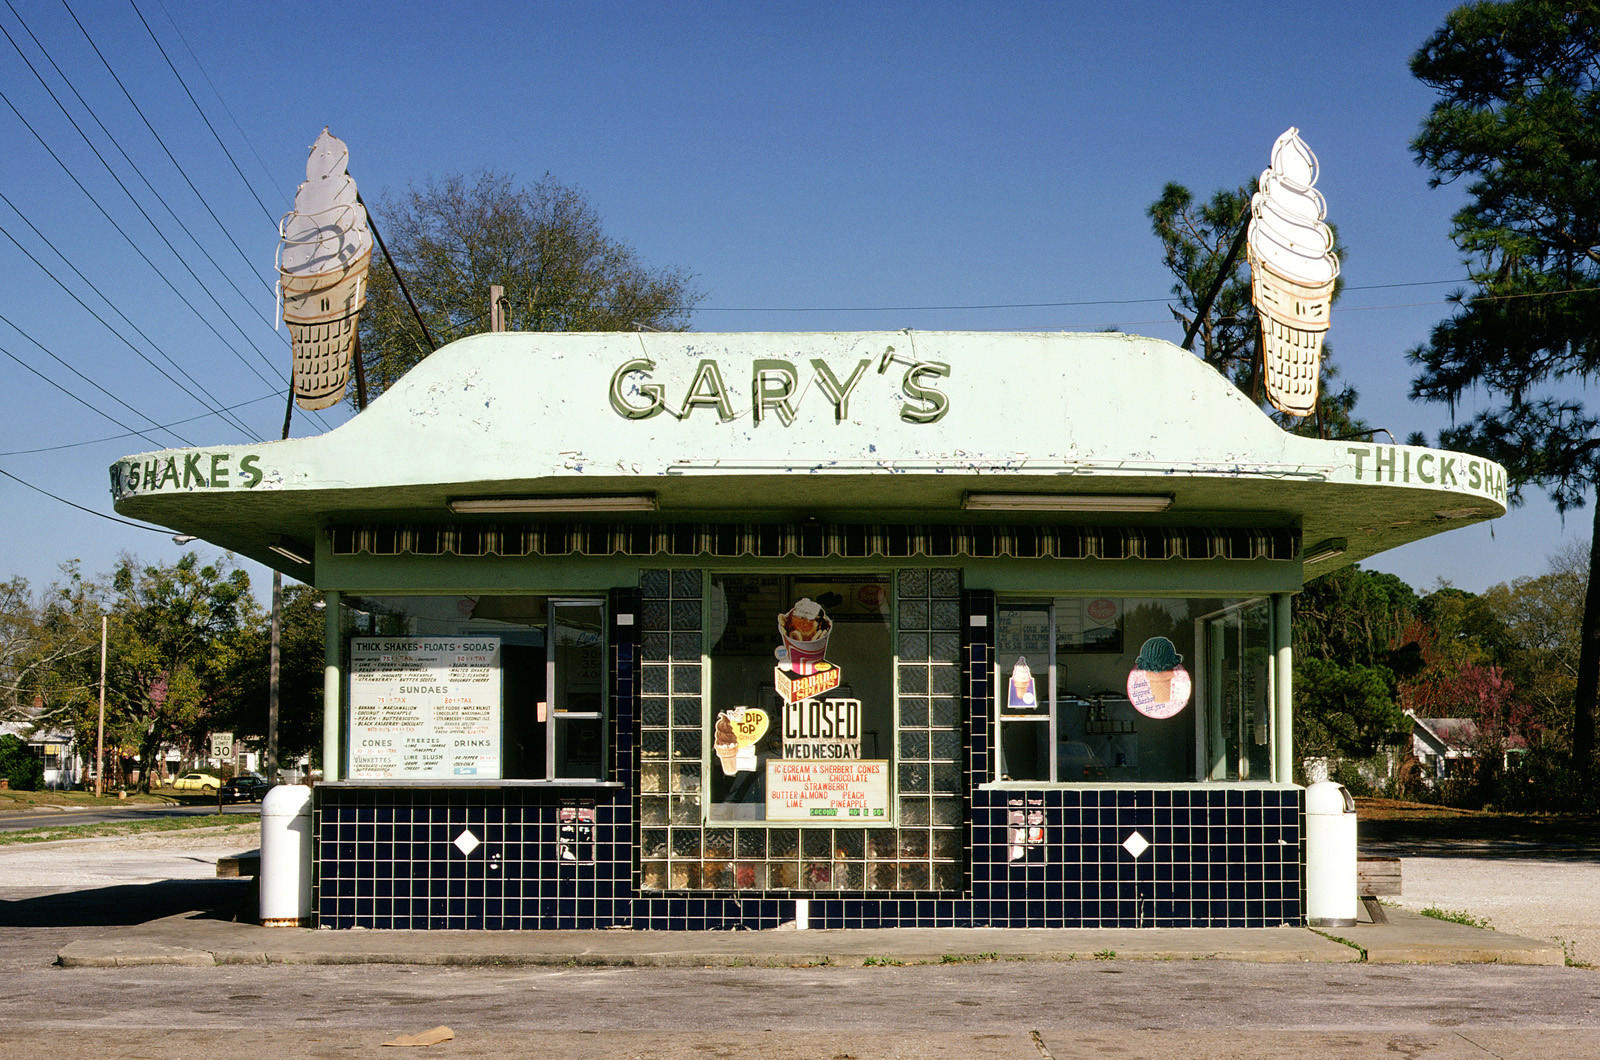 Gary's Thick Shakes, Jacksonville, Fla.